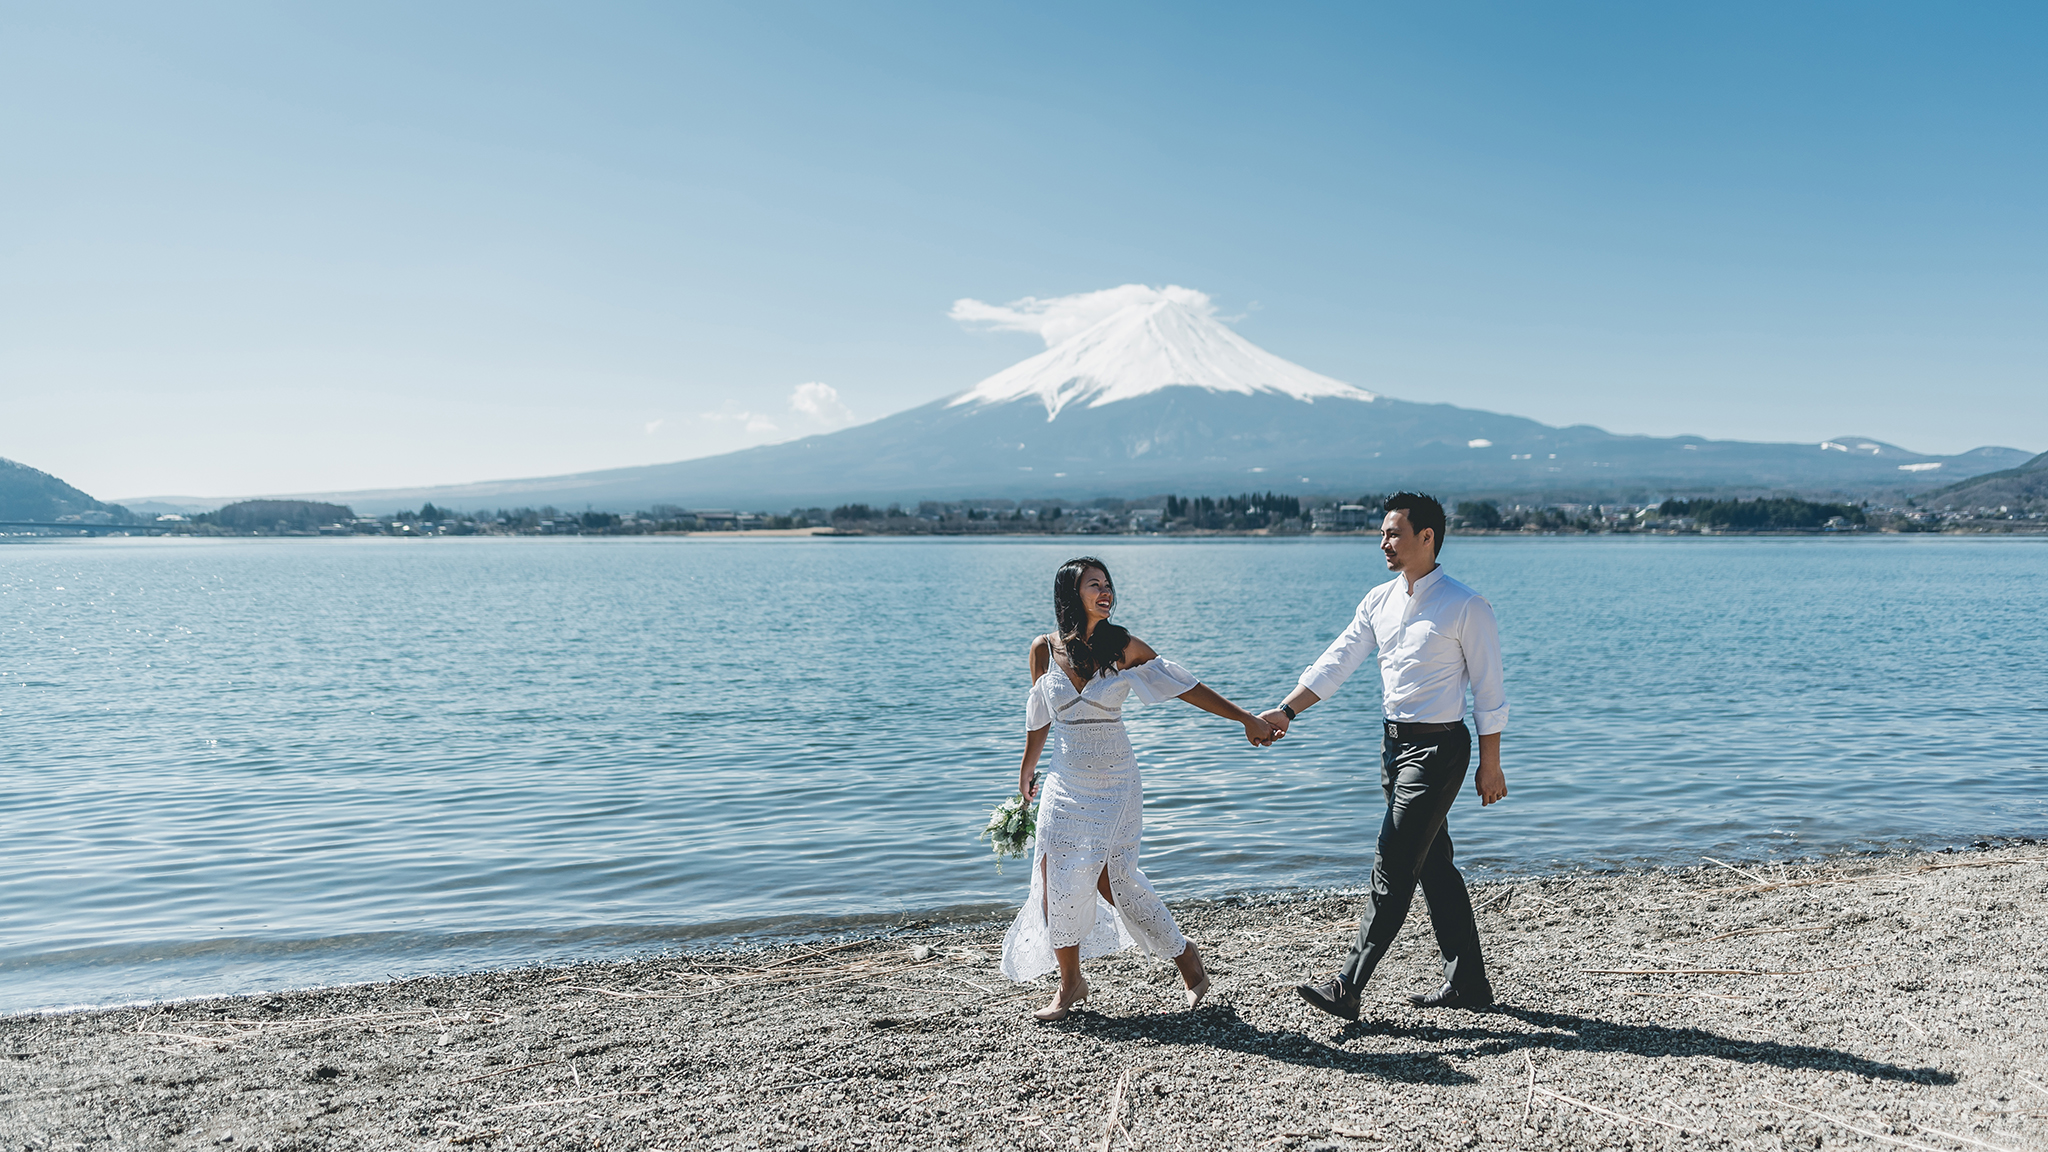 Japan Prewedding 11.JPG